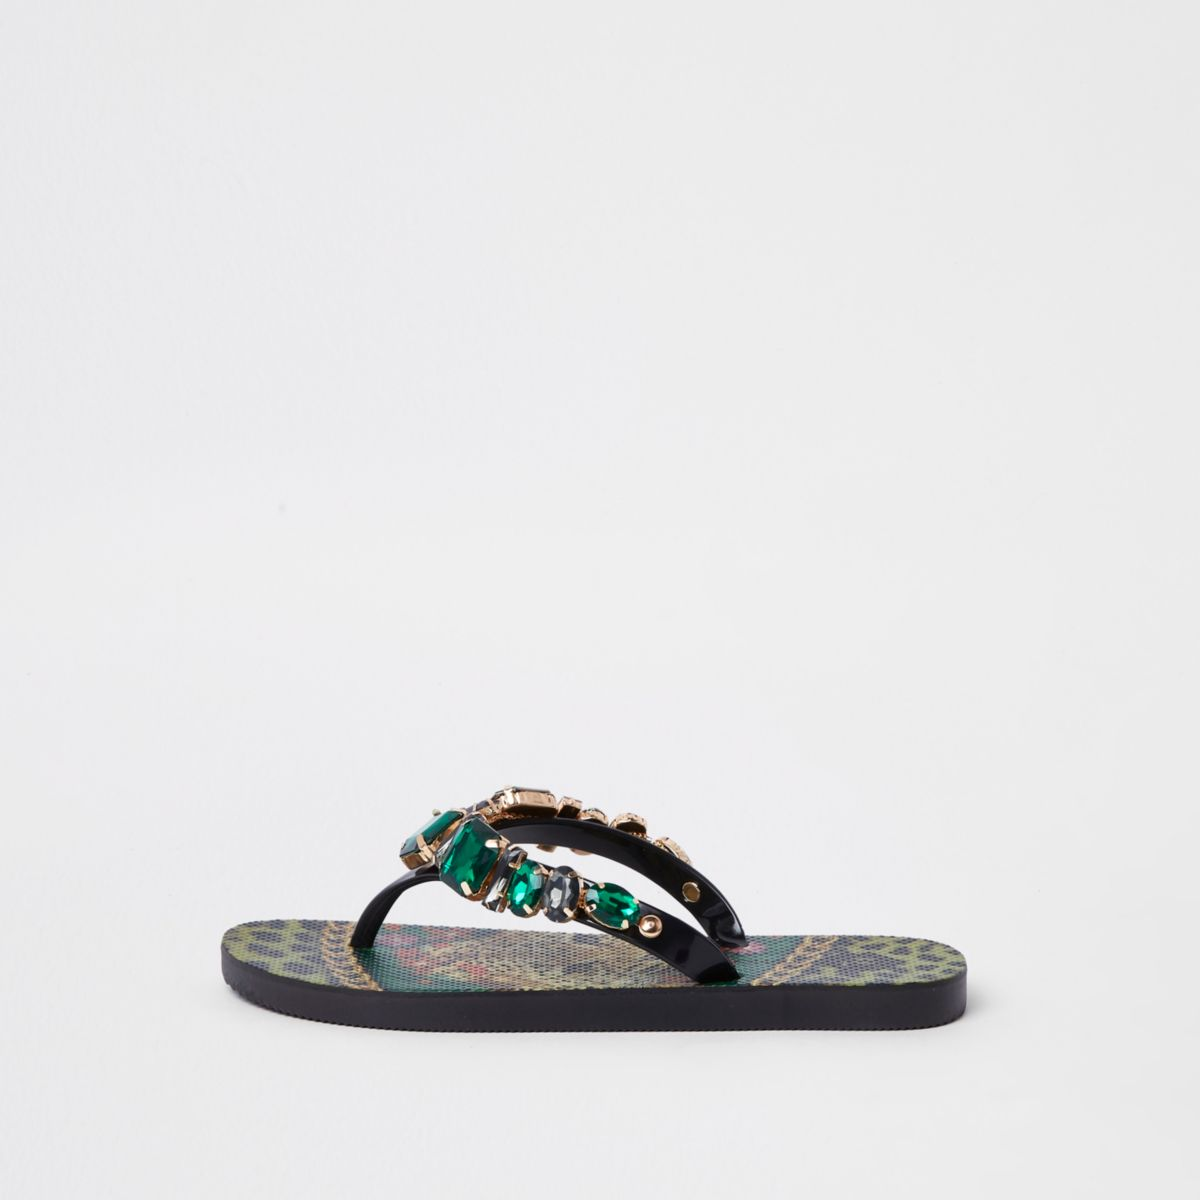 Green jewel embellished flip flops